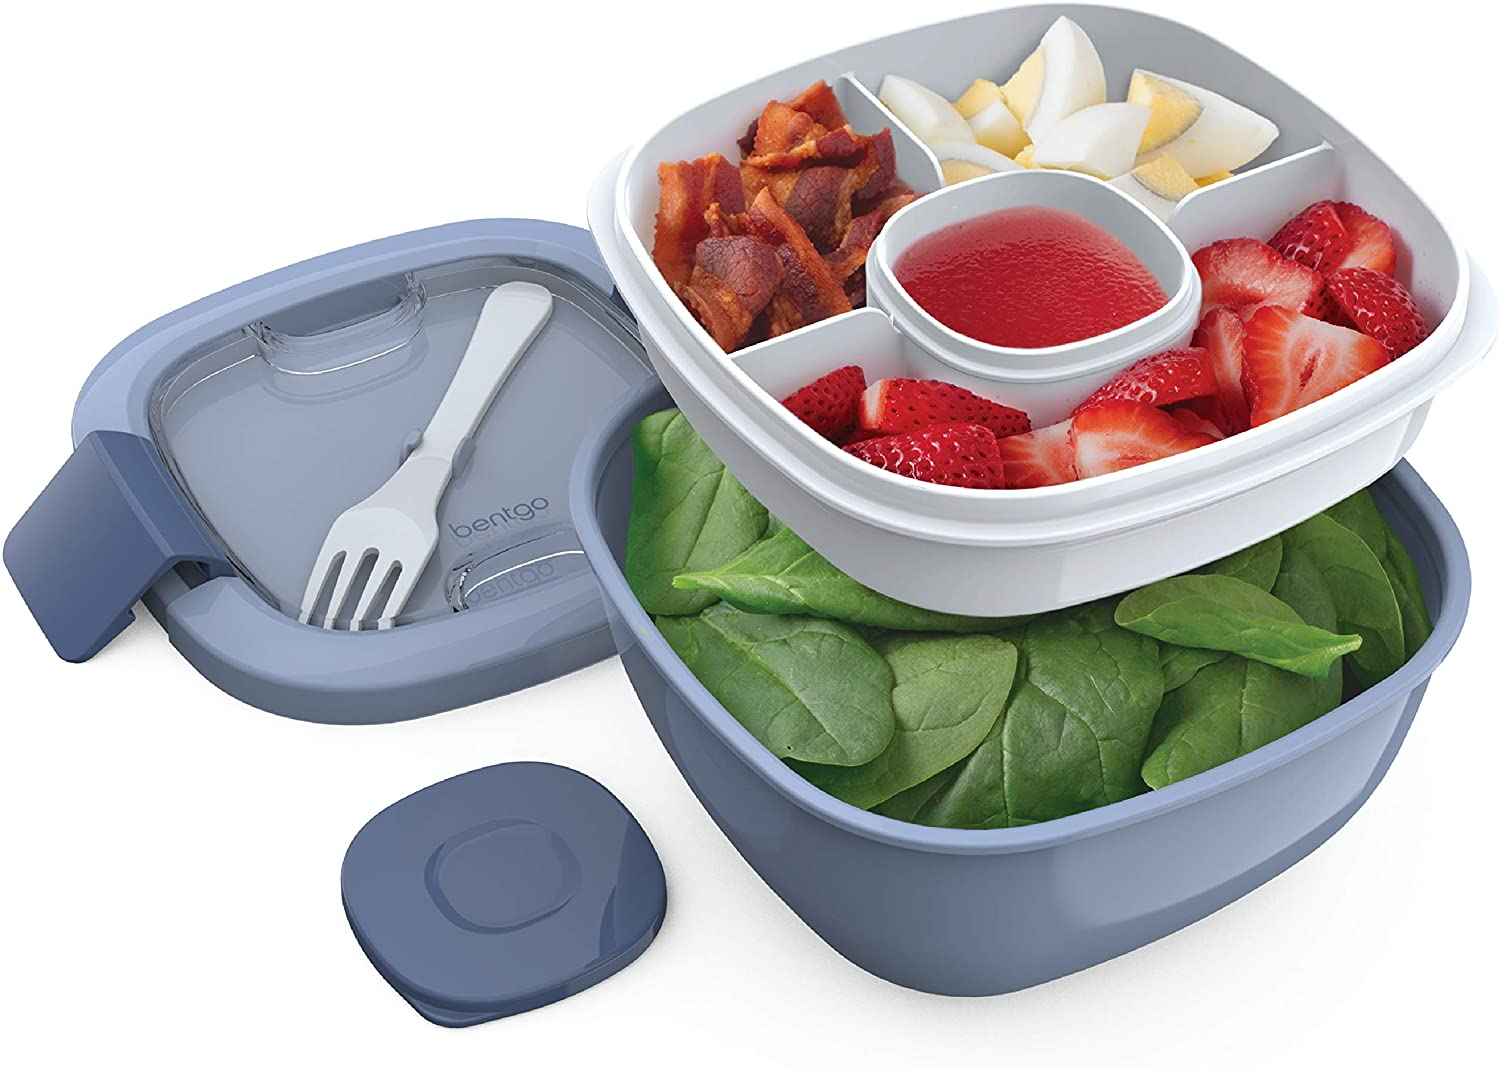 Bentgo Salad BPA-Free Lunch Container with Large 54-oz Bowl, 3-Compartment Bento-Style Tray for Salad Toppings and Snacks, 3-oz Sauce Container for Dressings, and Built-In Reusable Fork (Slate)